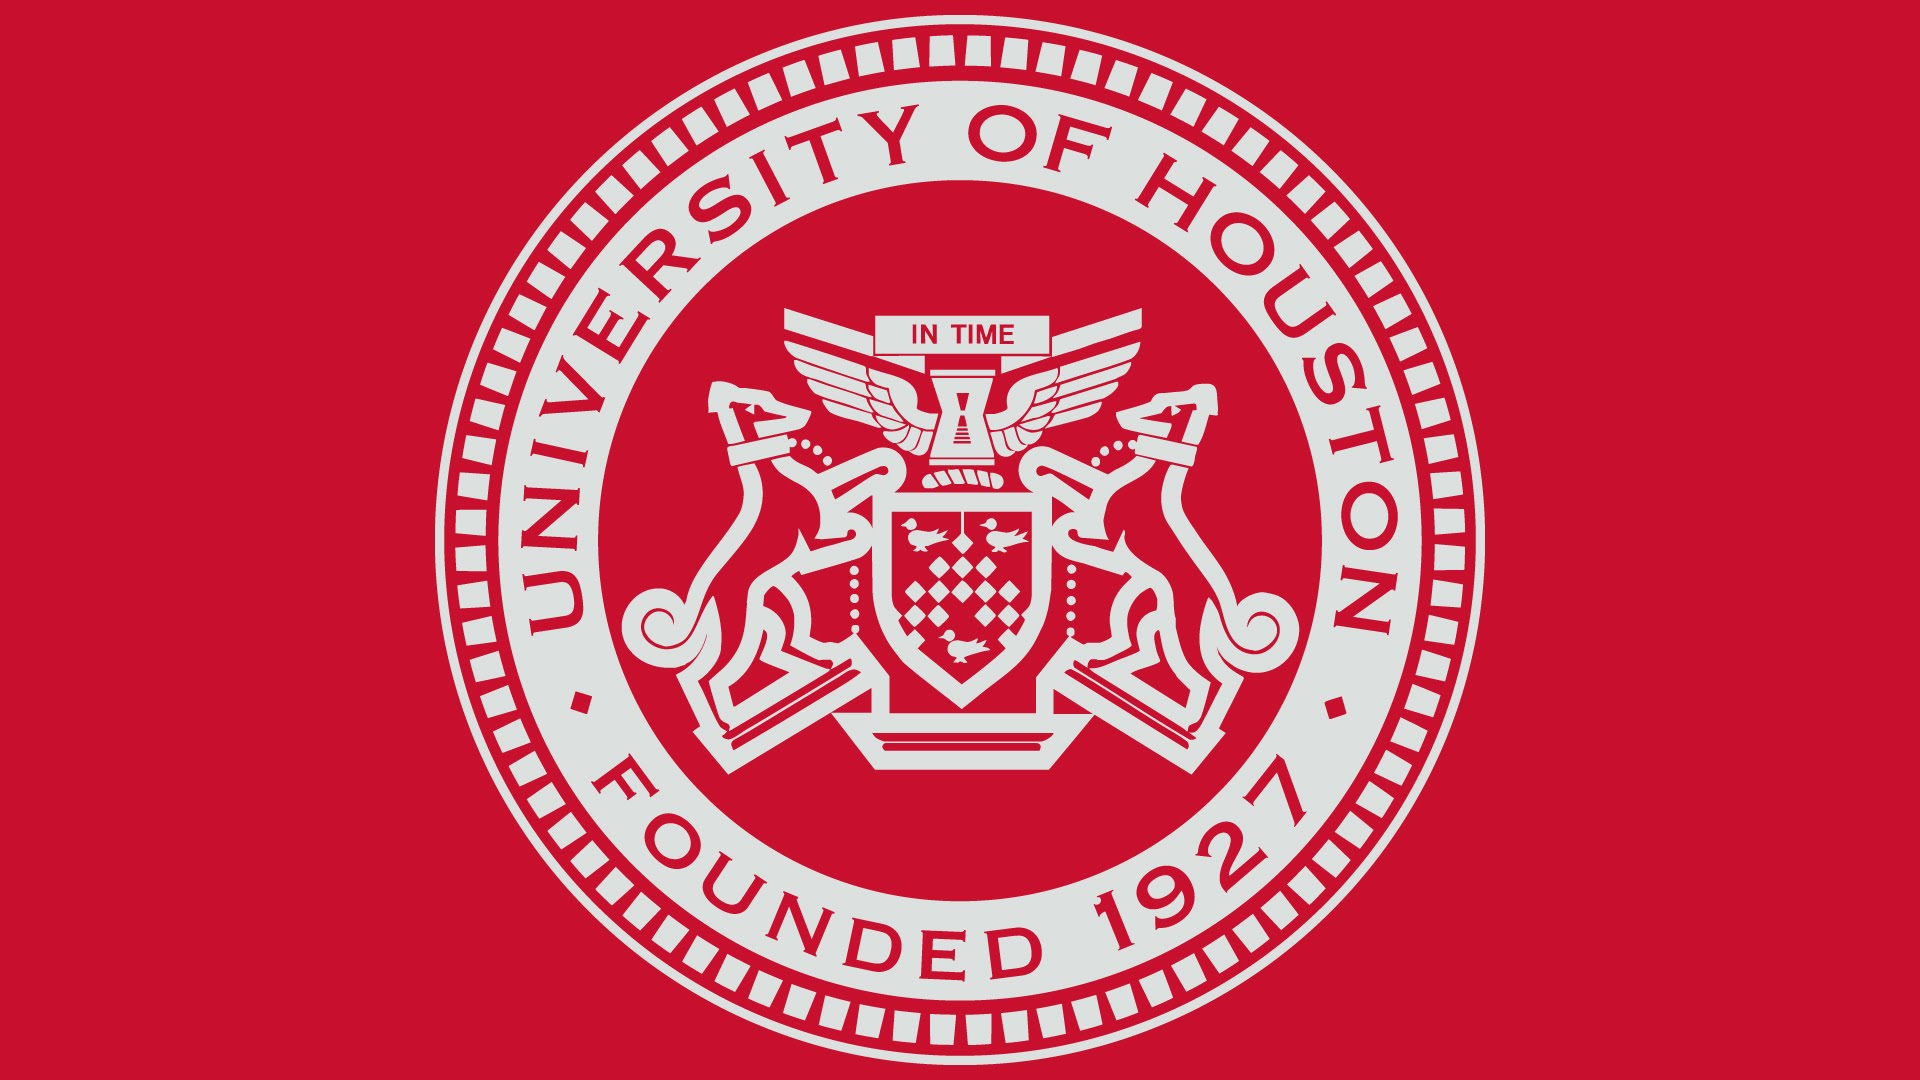 University Of Houston Wallpaper